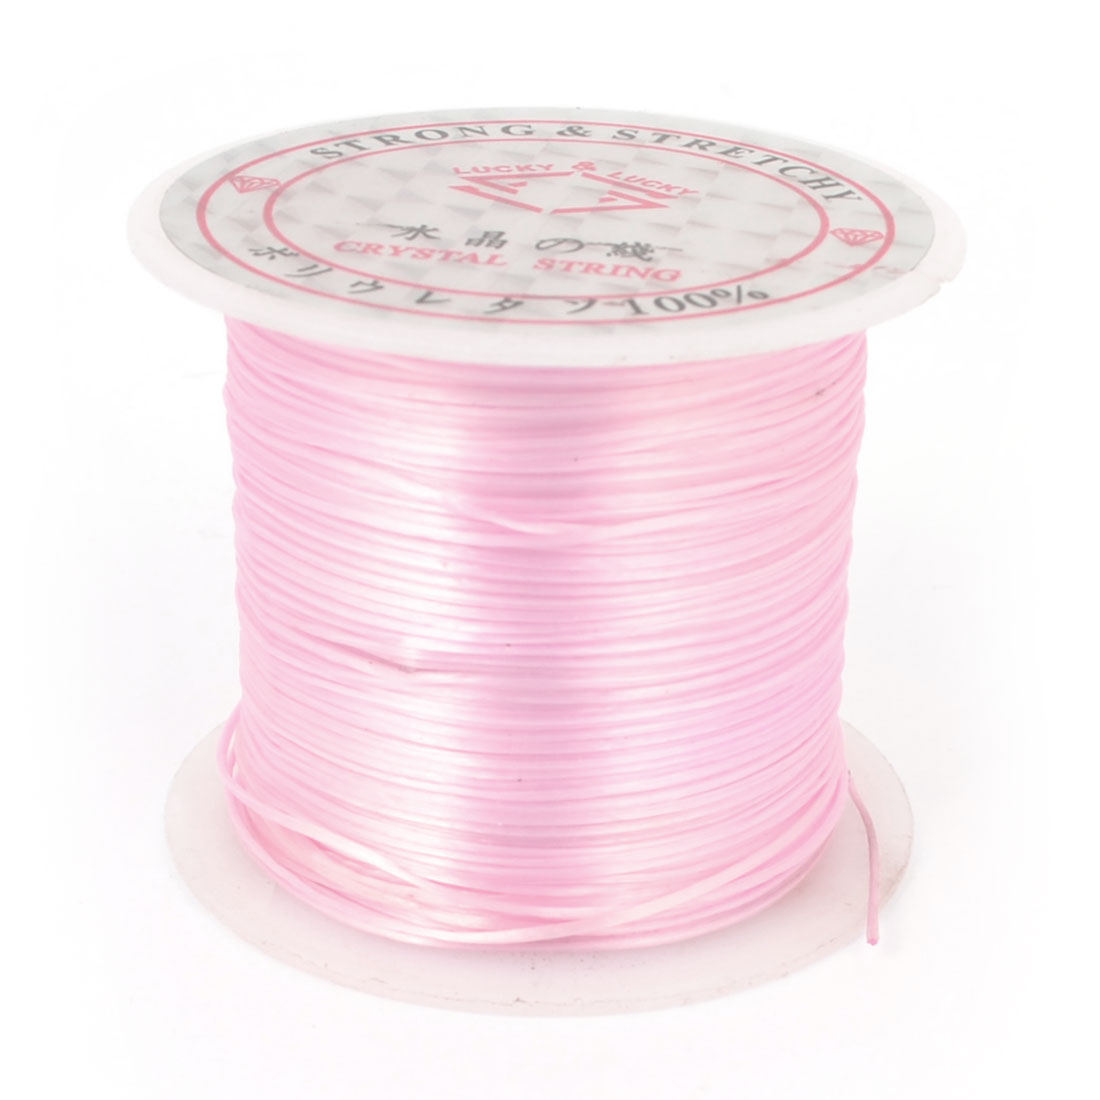 Stretchy Crystal Jewelry Beading String Cord Spool Pink